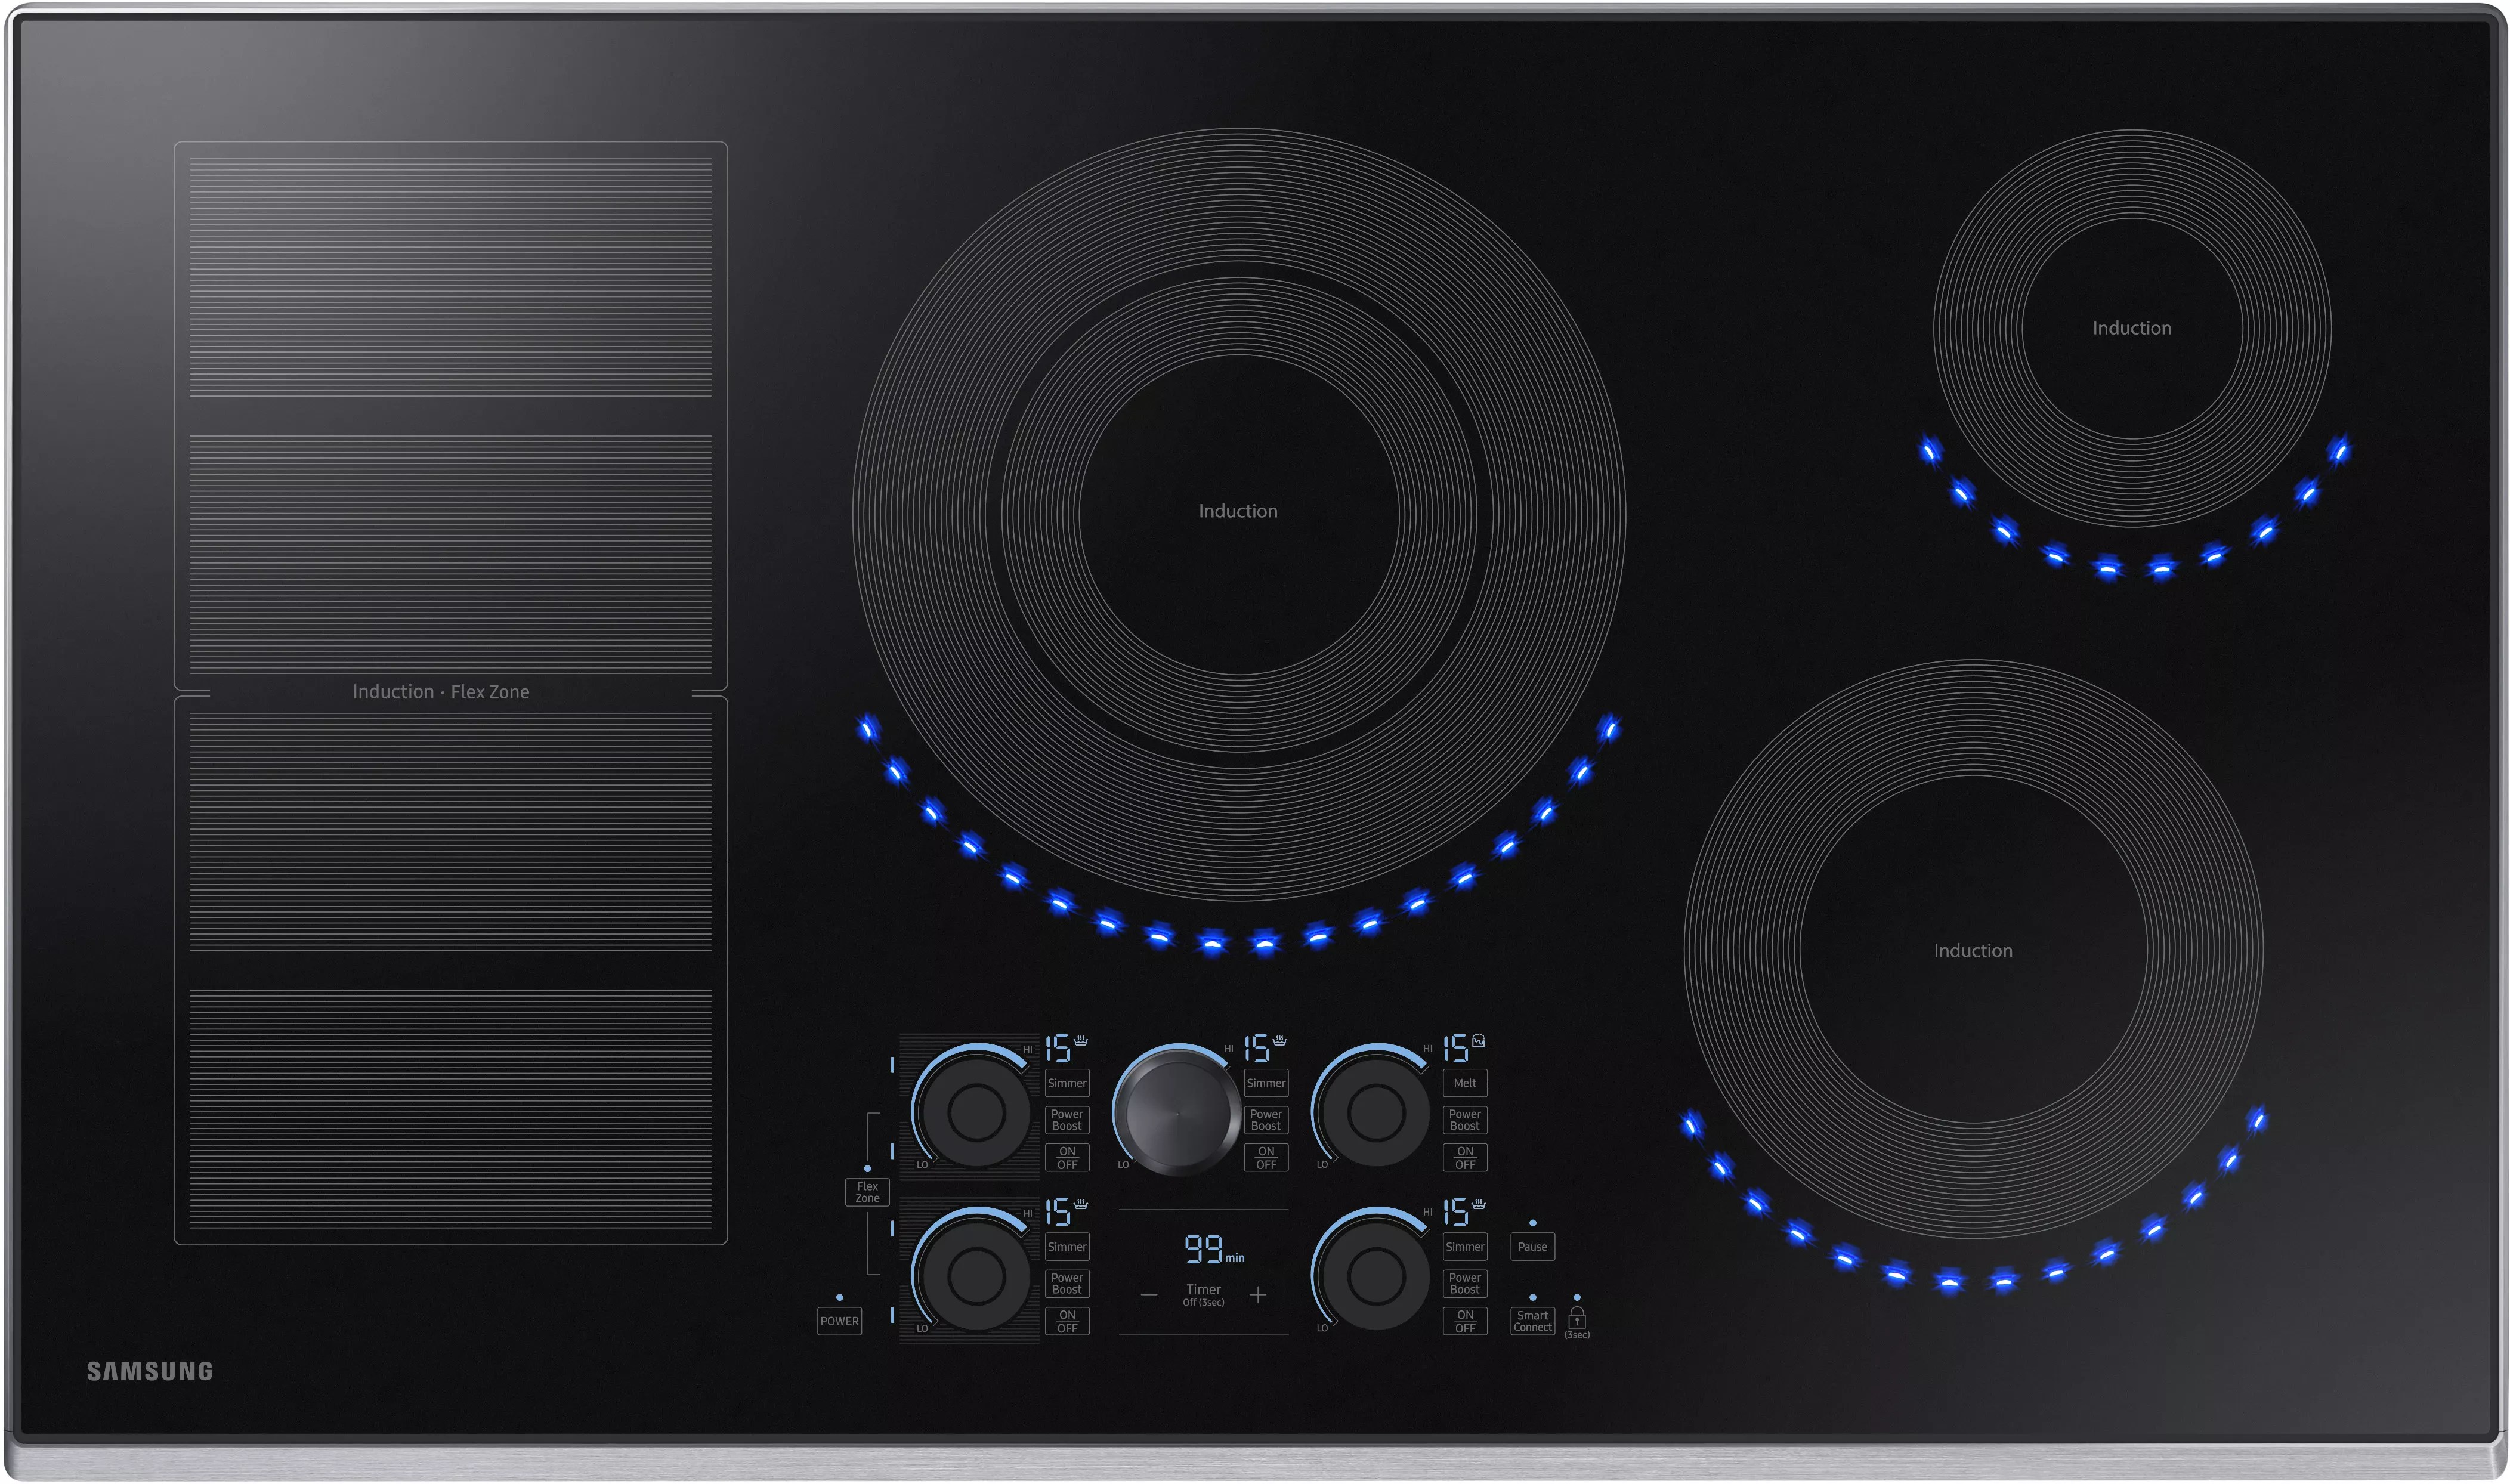 Induction Cooktop Samsung Nz36k7880us 36 Inch Induction Cooktop With Flex